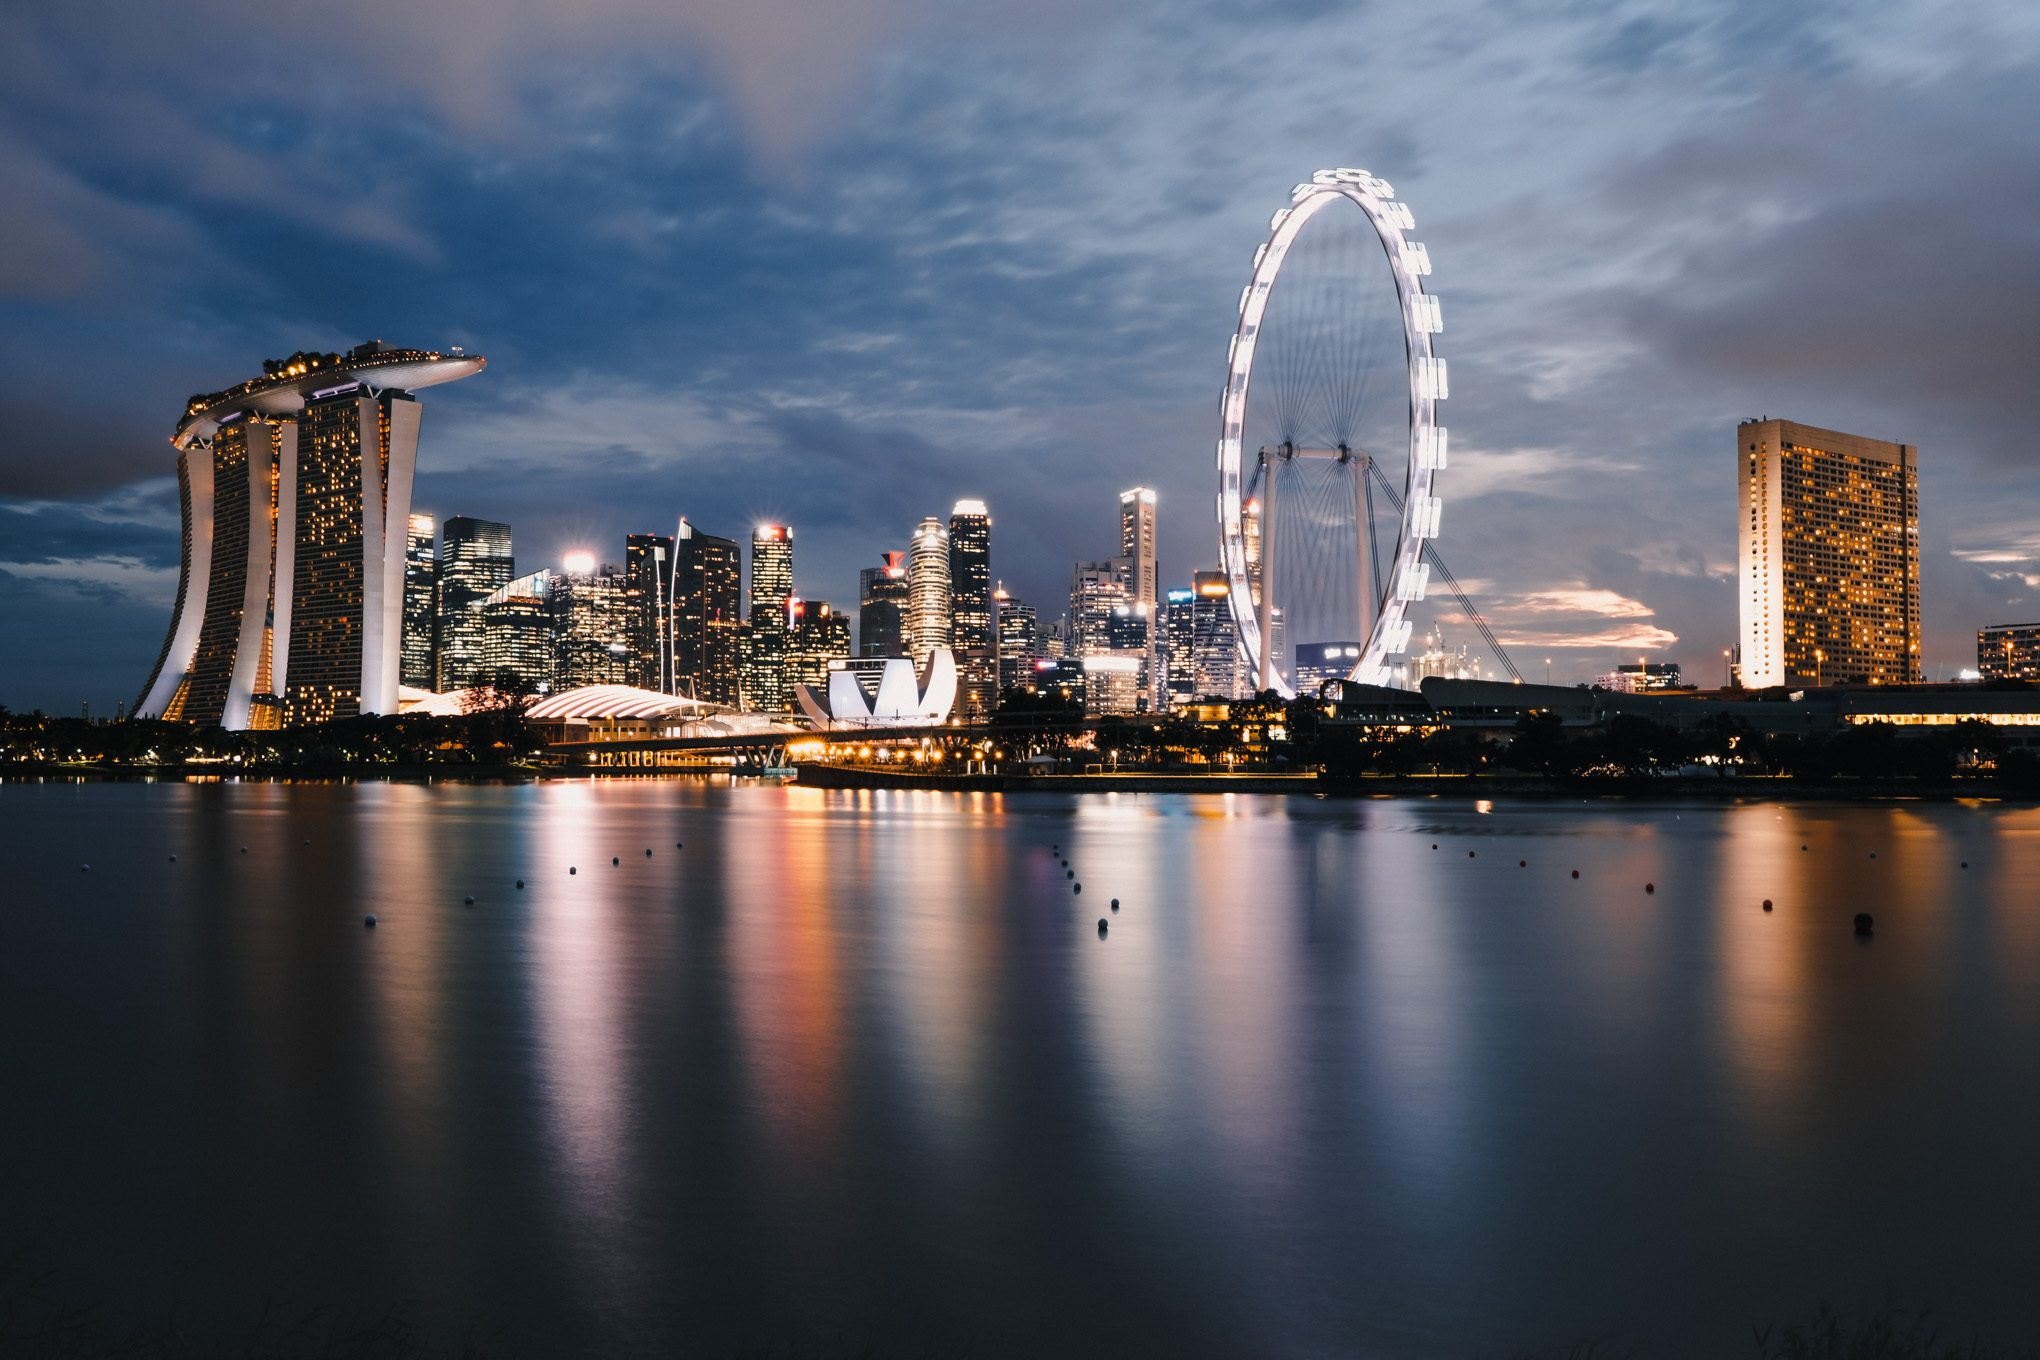 Travel photography from Singapore